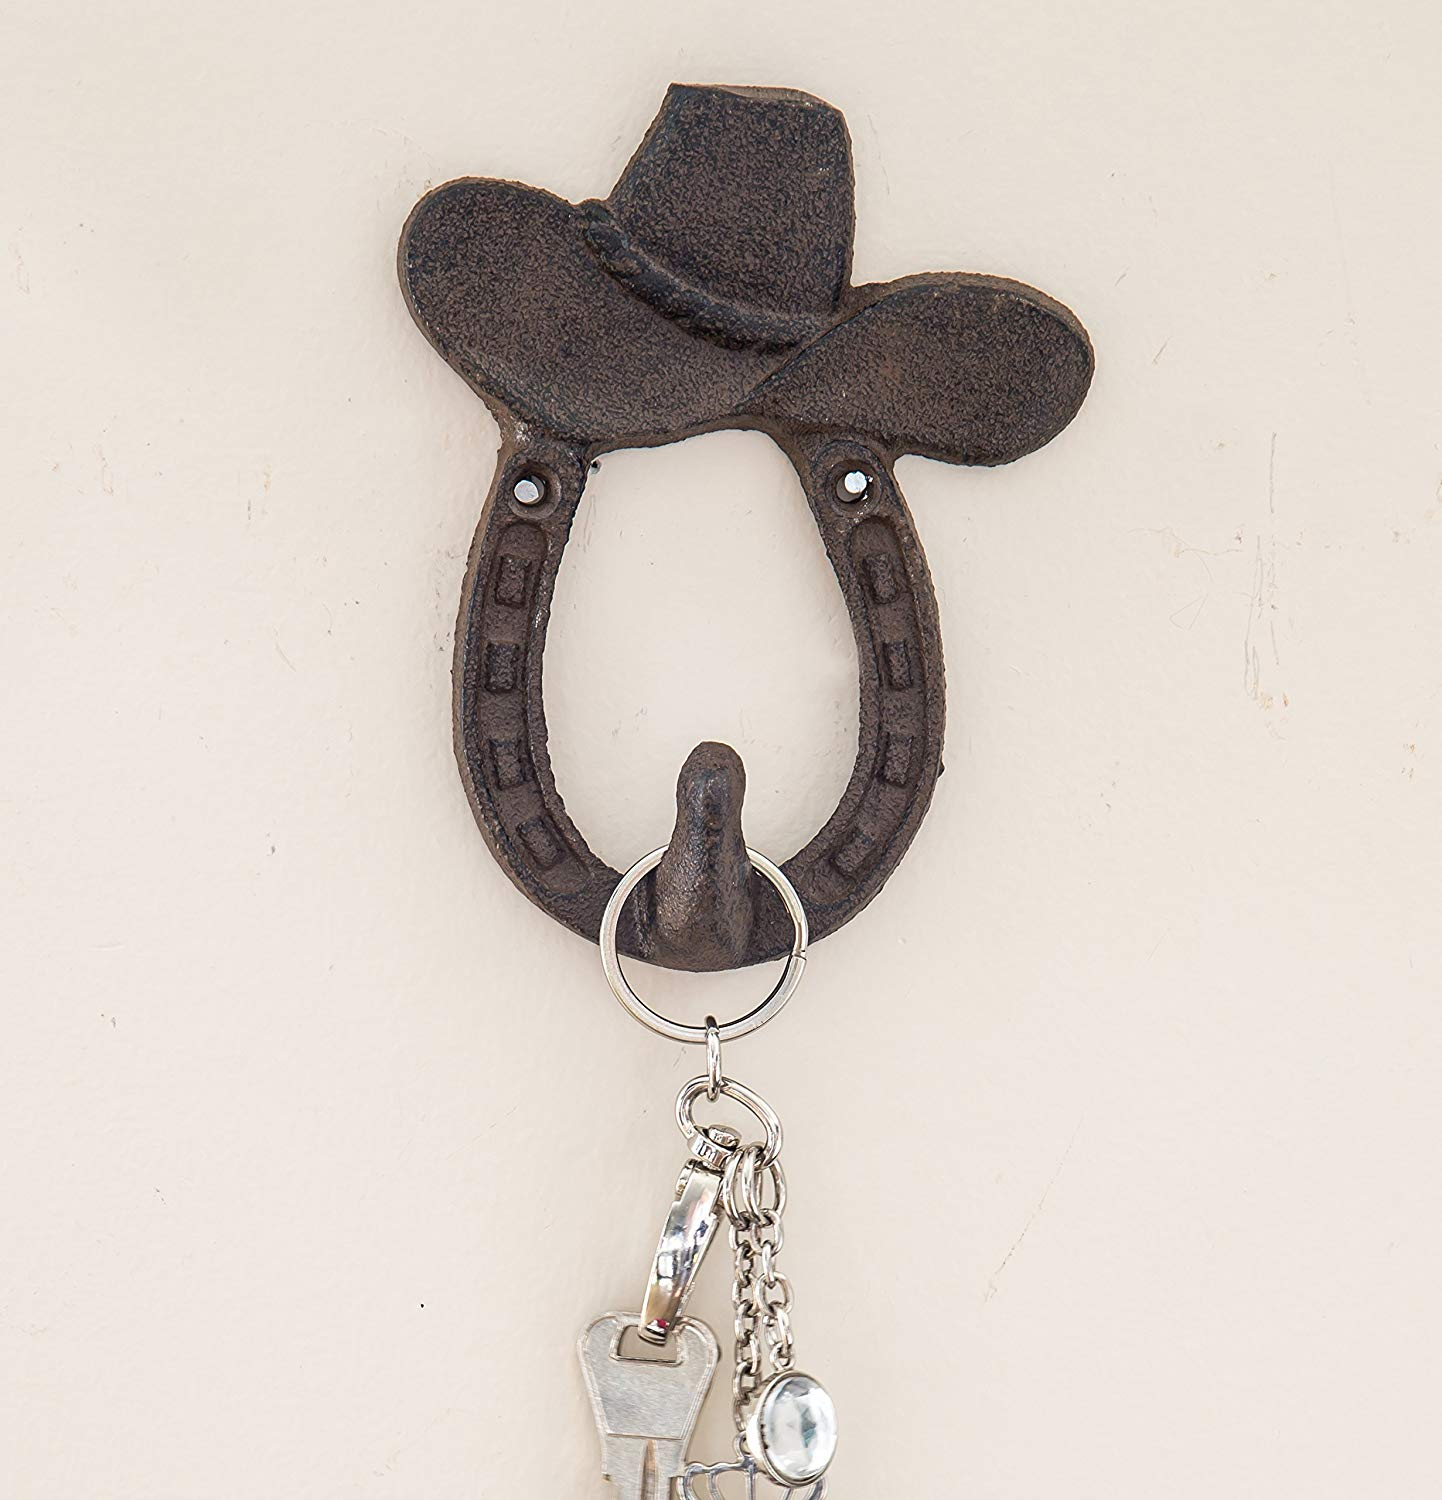 "Cast Iron Cowboy Hat and Horse Shoe Single Wall Hook/Hanger | Decorative Wall Mounted Coat Hook | Rustic Cast Iron | 3.9x1.2"" - With Screws And Anchors by Comfify CA-1504-04-BR"